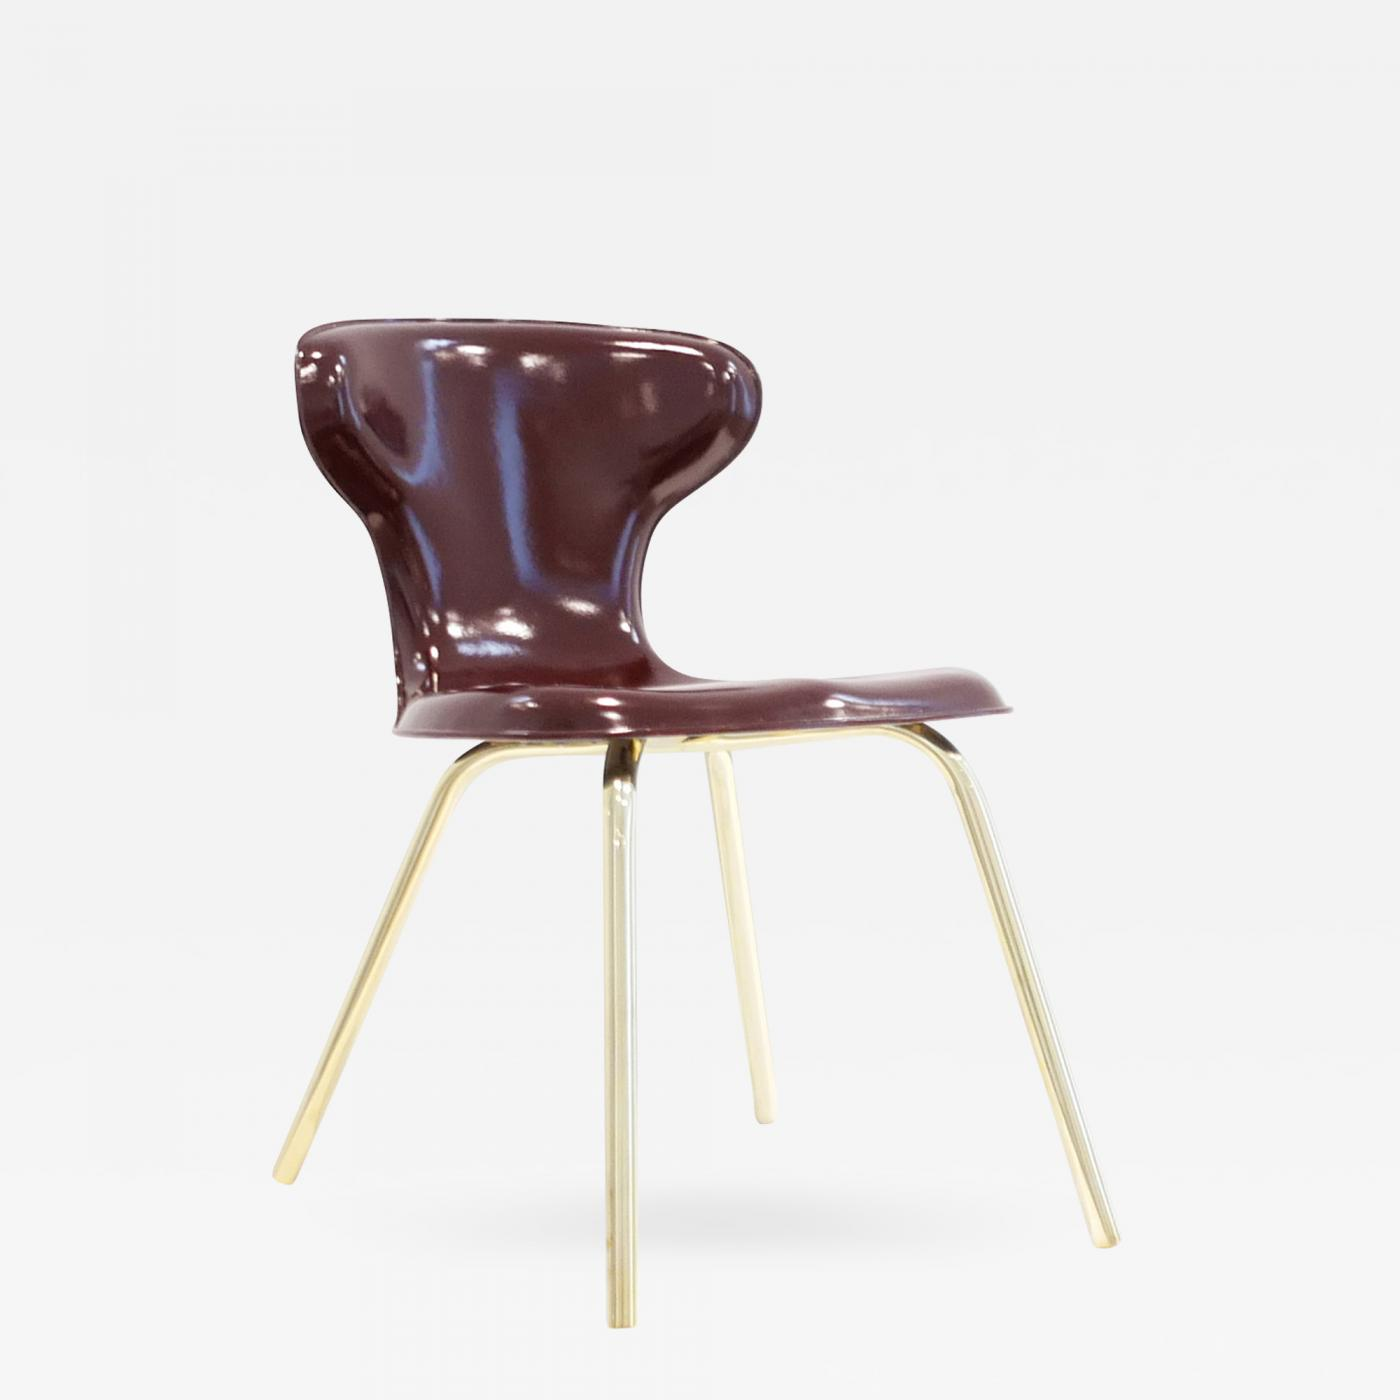 Listings / Furniture / Seating / Dining Chairs · Egmont Arens Fiberglass  Chair